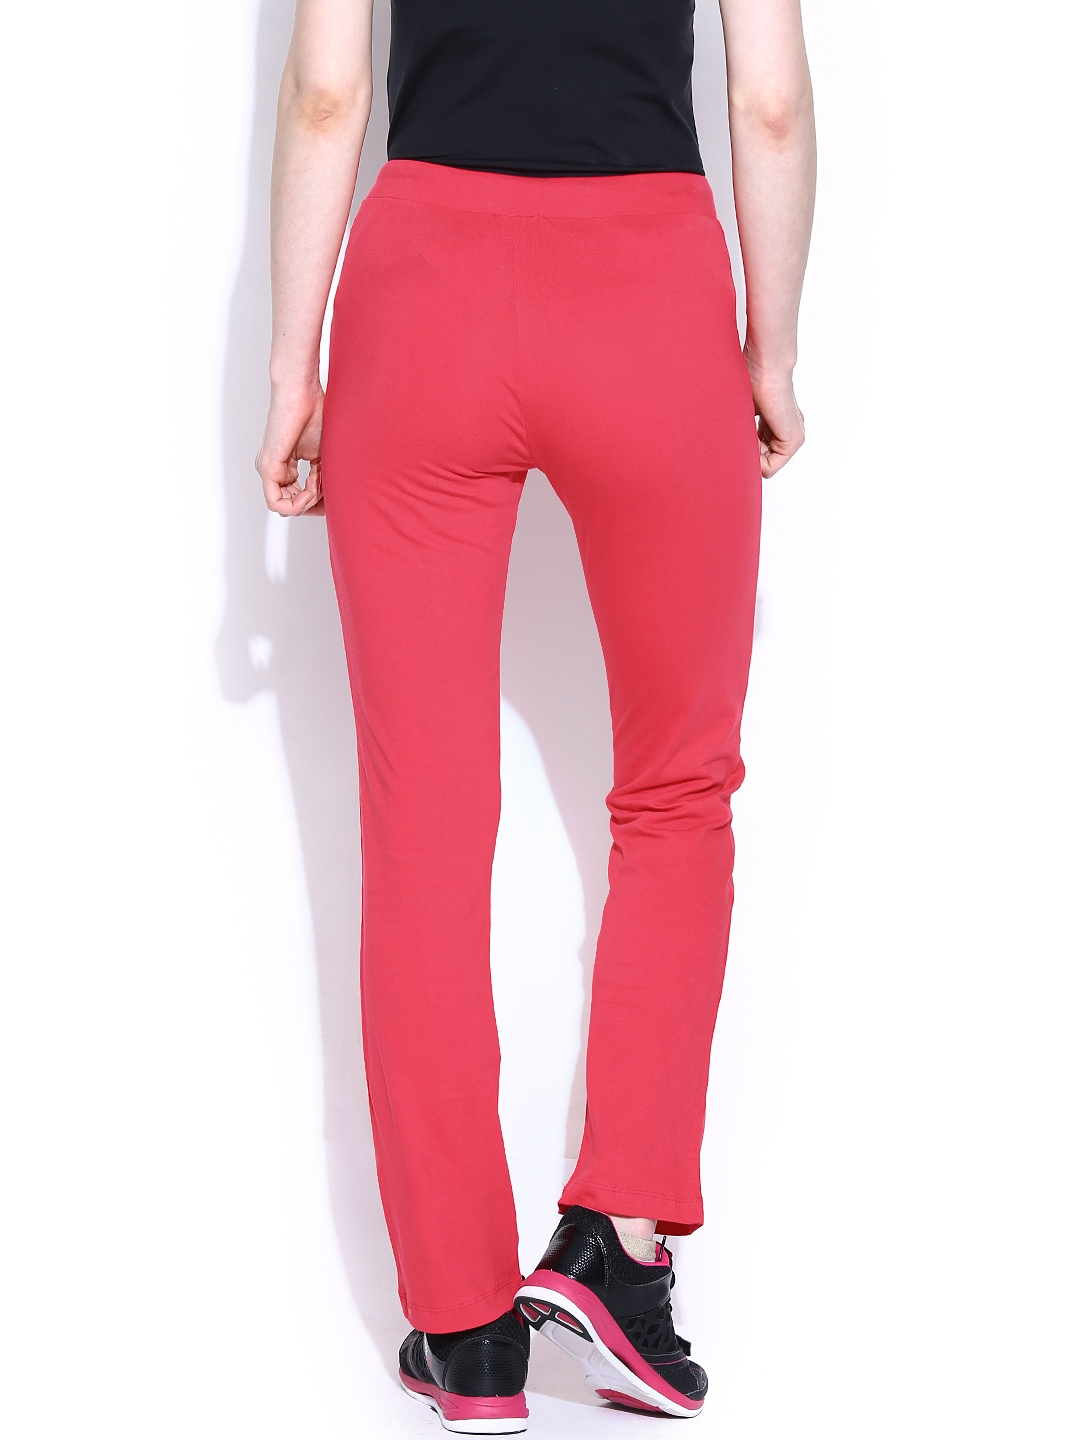 Brilliant Home Clothing Women Clothing Track Pants Style Quotient Track Pants